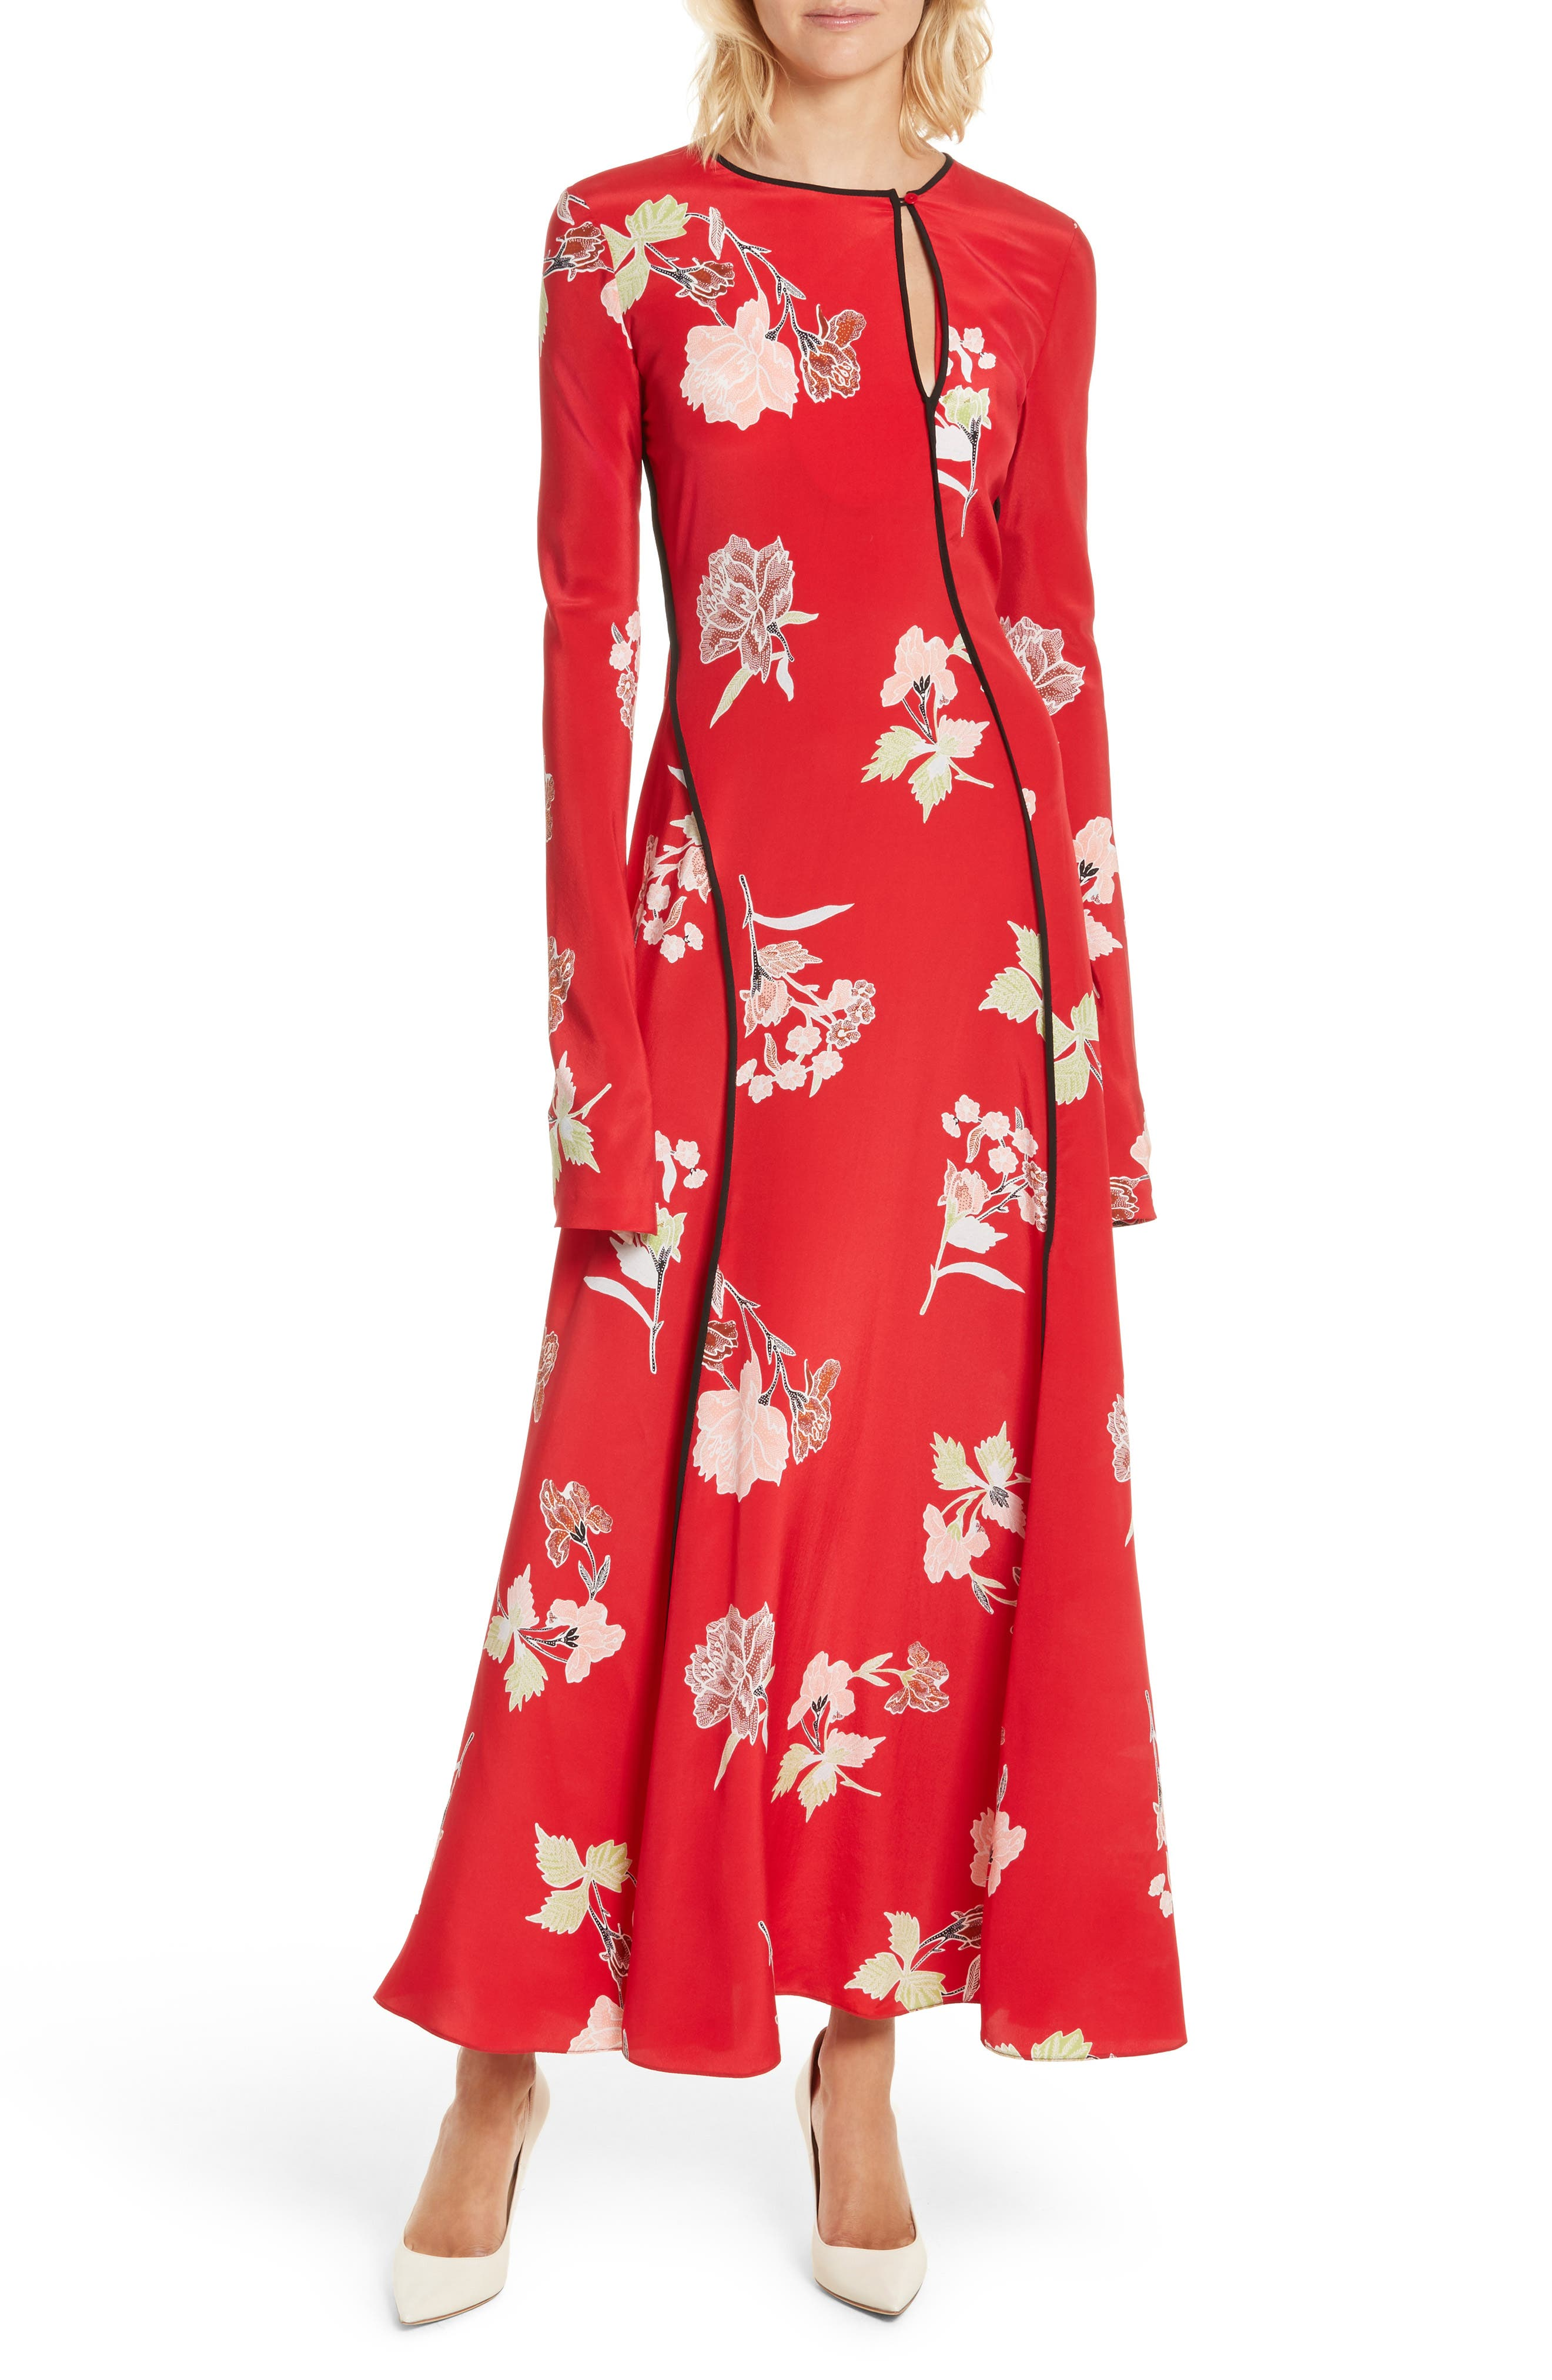 Bias Cut Floral Silk Maxi Dress,                             Main thumbnail 1, color,                             Everton Lipstick / Black